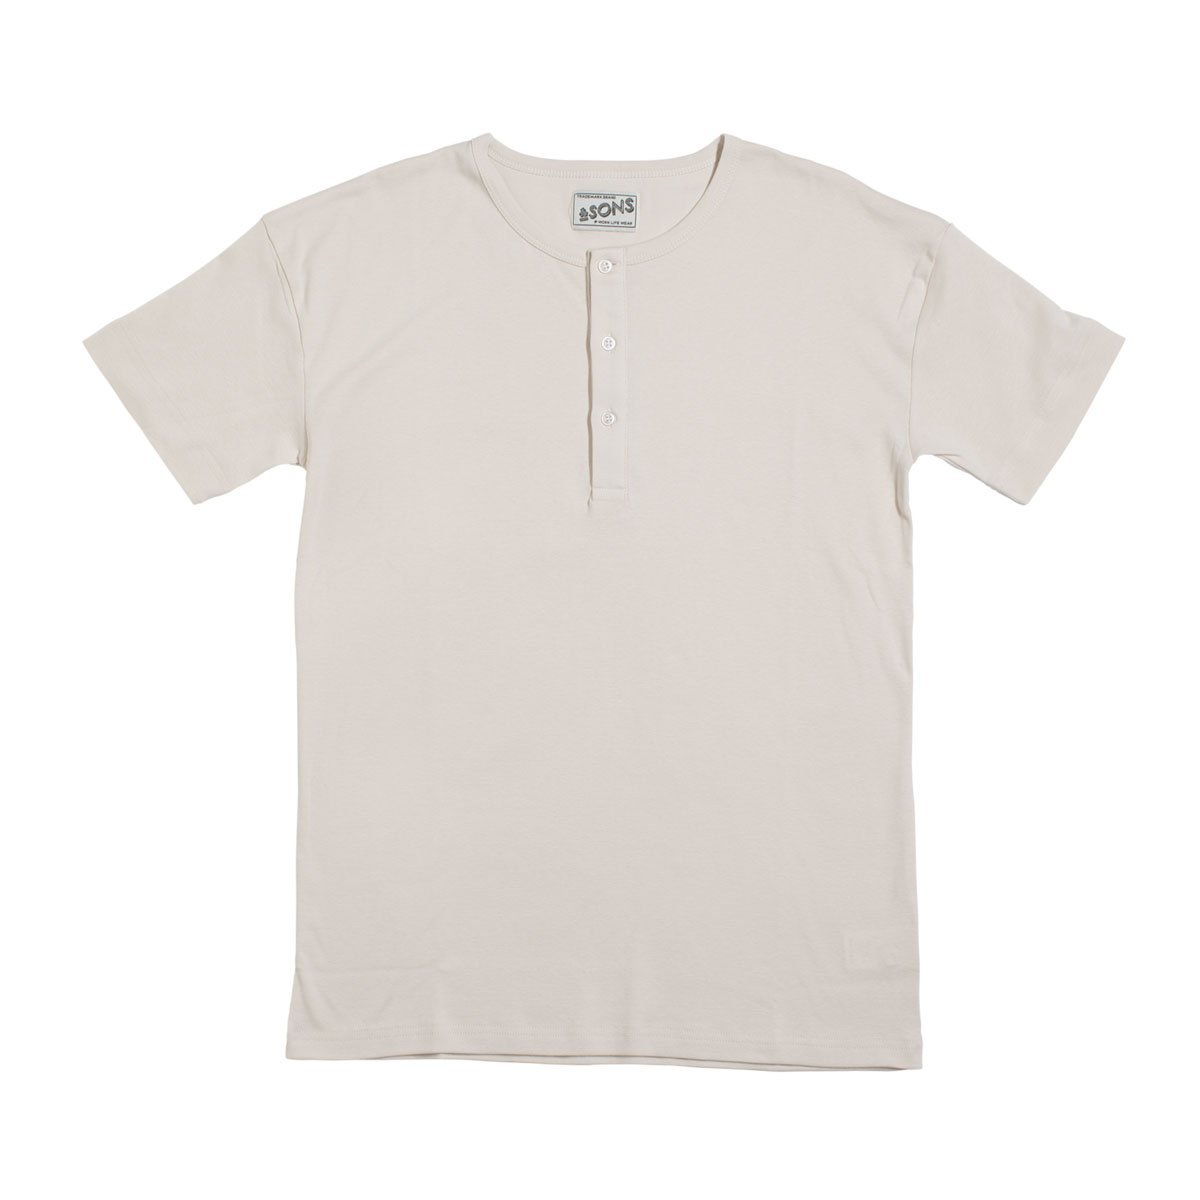 &SONS | Elder Grandad Short Sleeve Top | Henley T-Shirt | Heavy Cotton